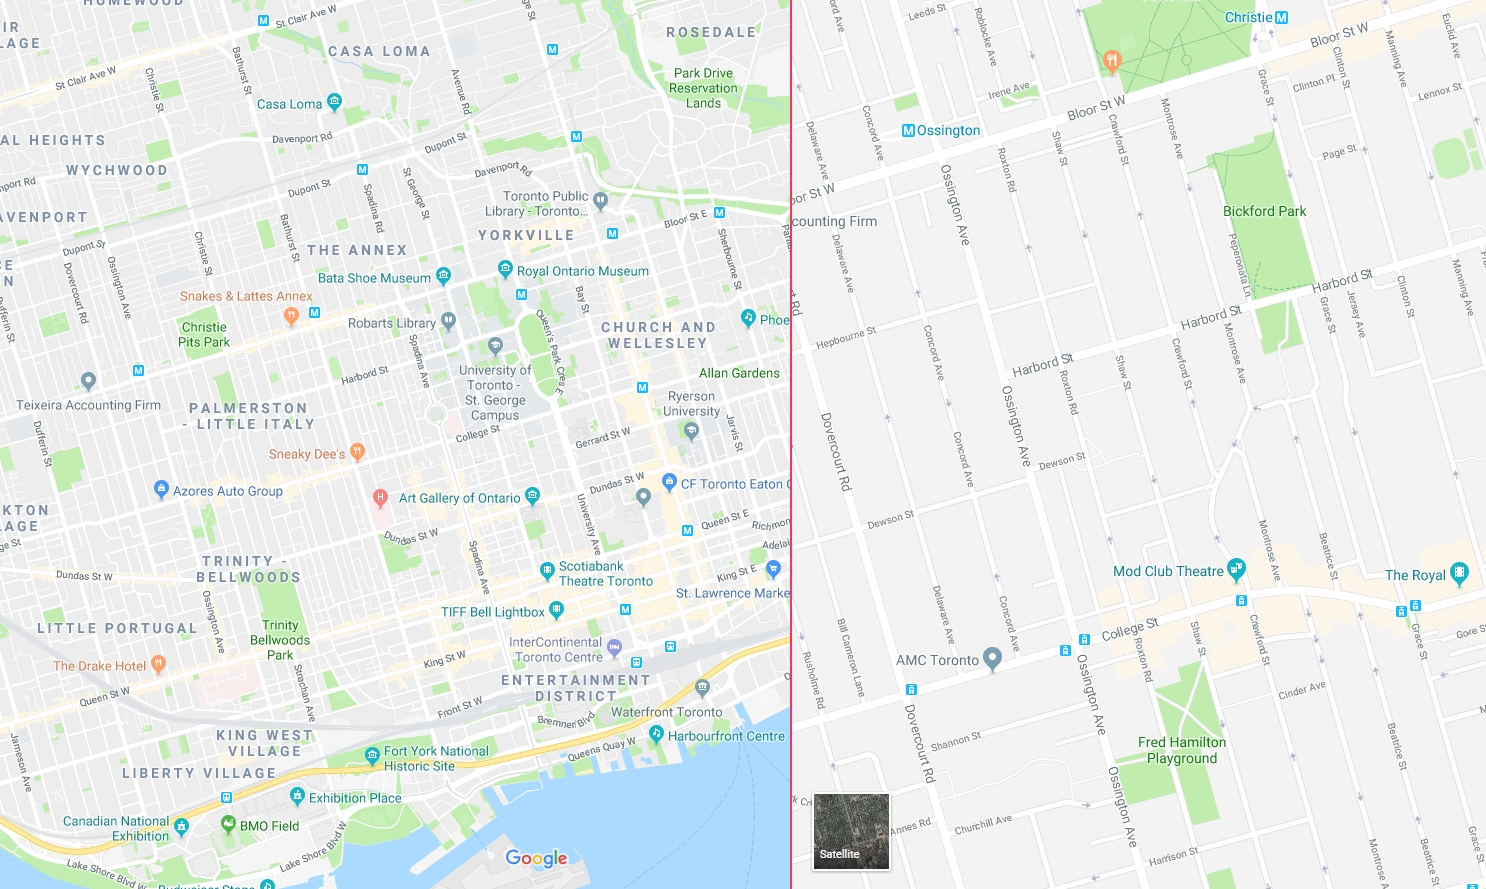 Can We Have An Option To Change Contrast In Google Maps Boh8eia